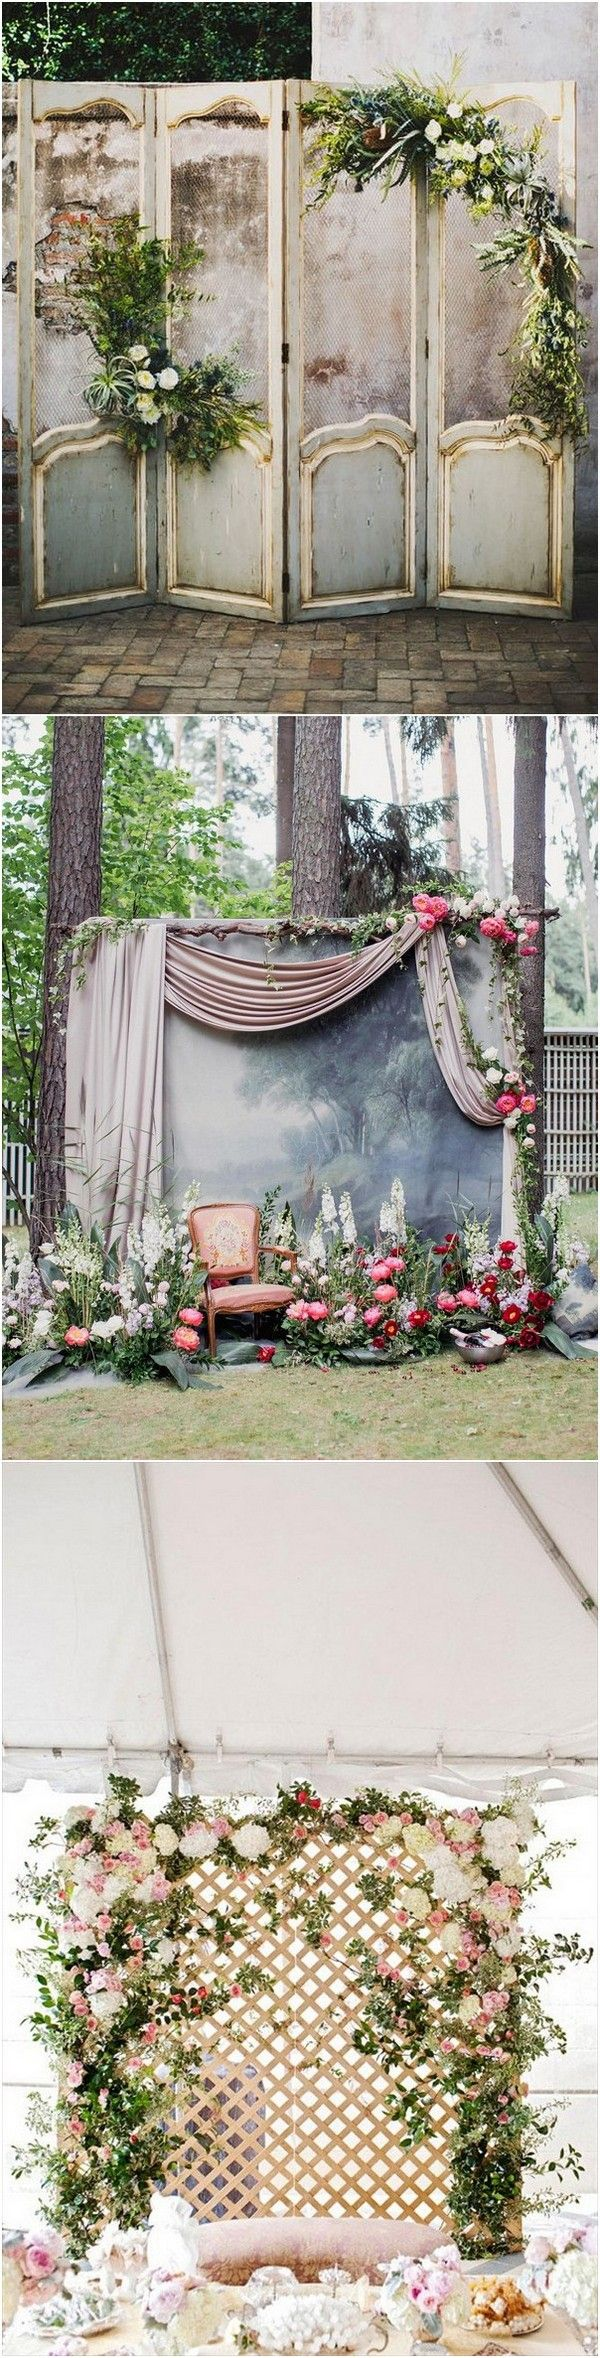 Trending 15 Hottest Wedding Backdrop Ideas For Your Ceremony Oh Best Day Ever Photo Booth Backdrop Wedding Diy Wedding Arch Wedding Backdrop